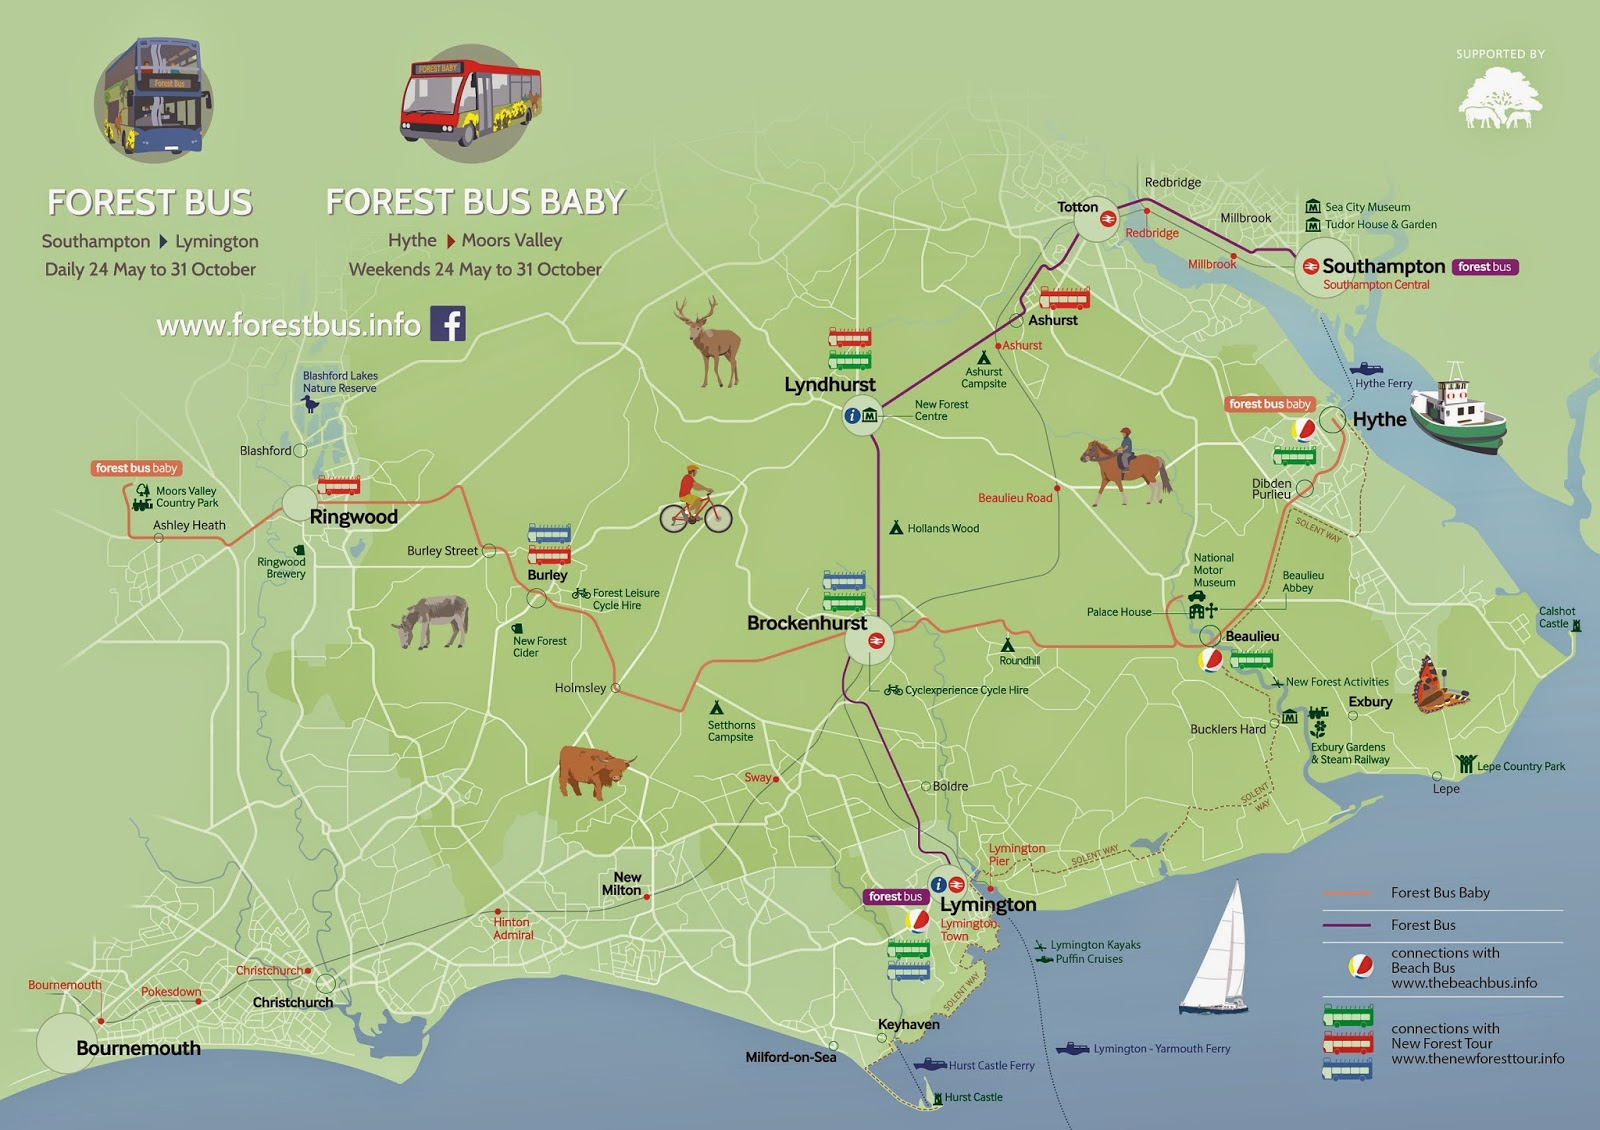 Three new bus services for the New Forest  The New Forest and